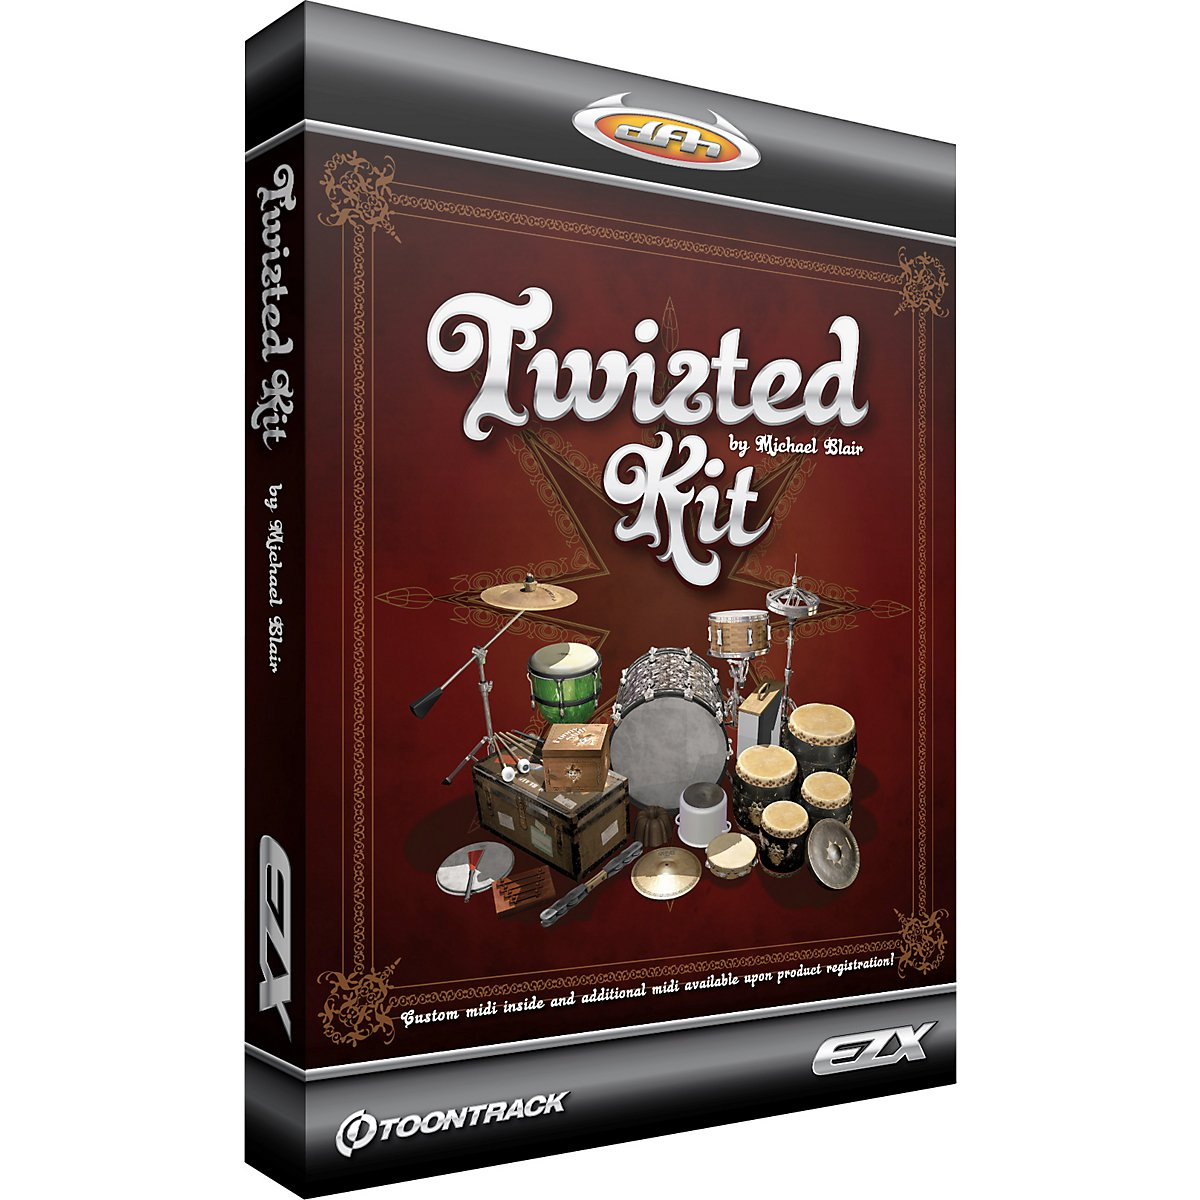 Toontrack Twisted Kit EZX Expansion Pack Software for EZdrummer – Sampled by Michael Blair – Expansive MIDI Library – Includes Download Key